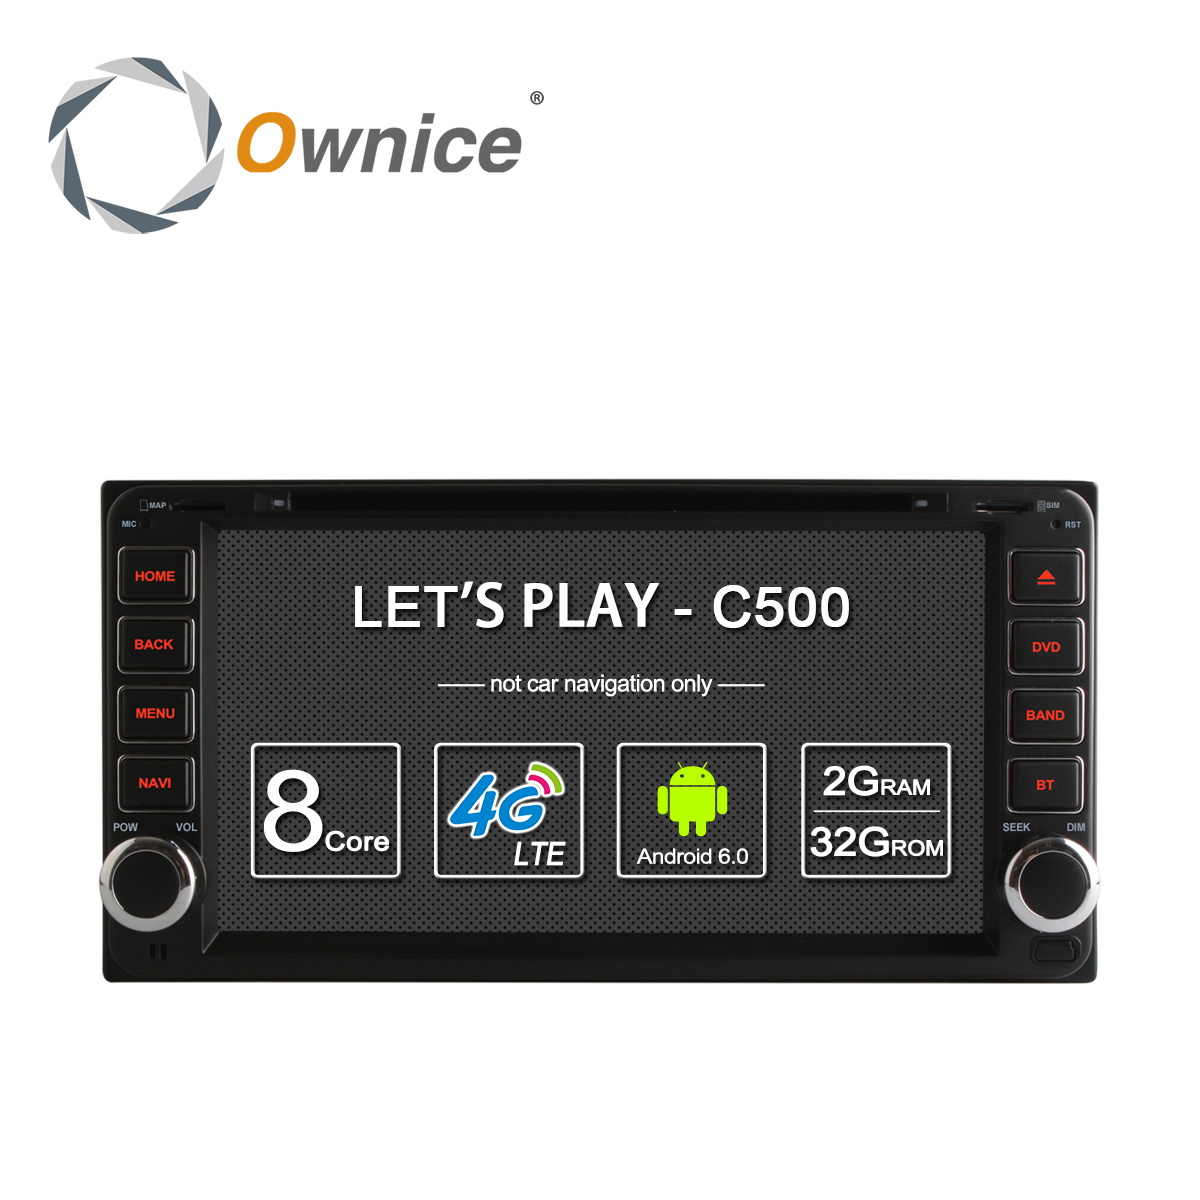 Ownice Android 6.0 Octa 8 Core 2G RAM car dvd player for Toyota Hilux VIOS Old Camry Prado RAV4 Prado 2003-2008  4G LTE Network 2 din quad core android 4 4 dvd плеер автомобиля для toyota corolla camry rav4 previa vios hilux прадо terios gps navi радио mp3 wi fi